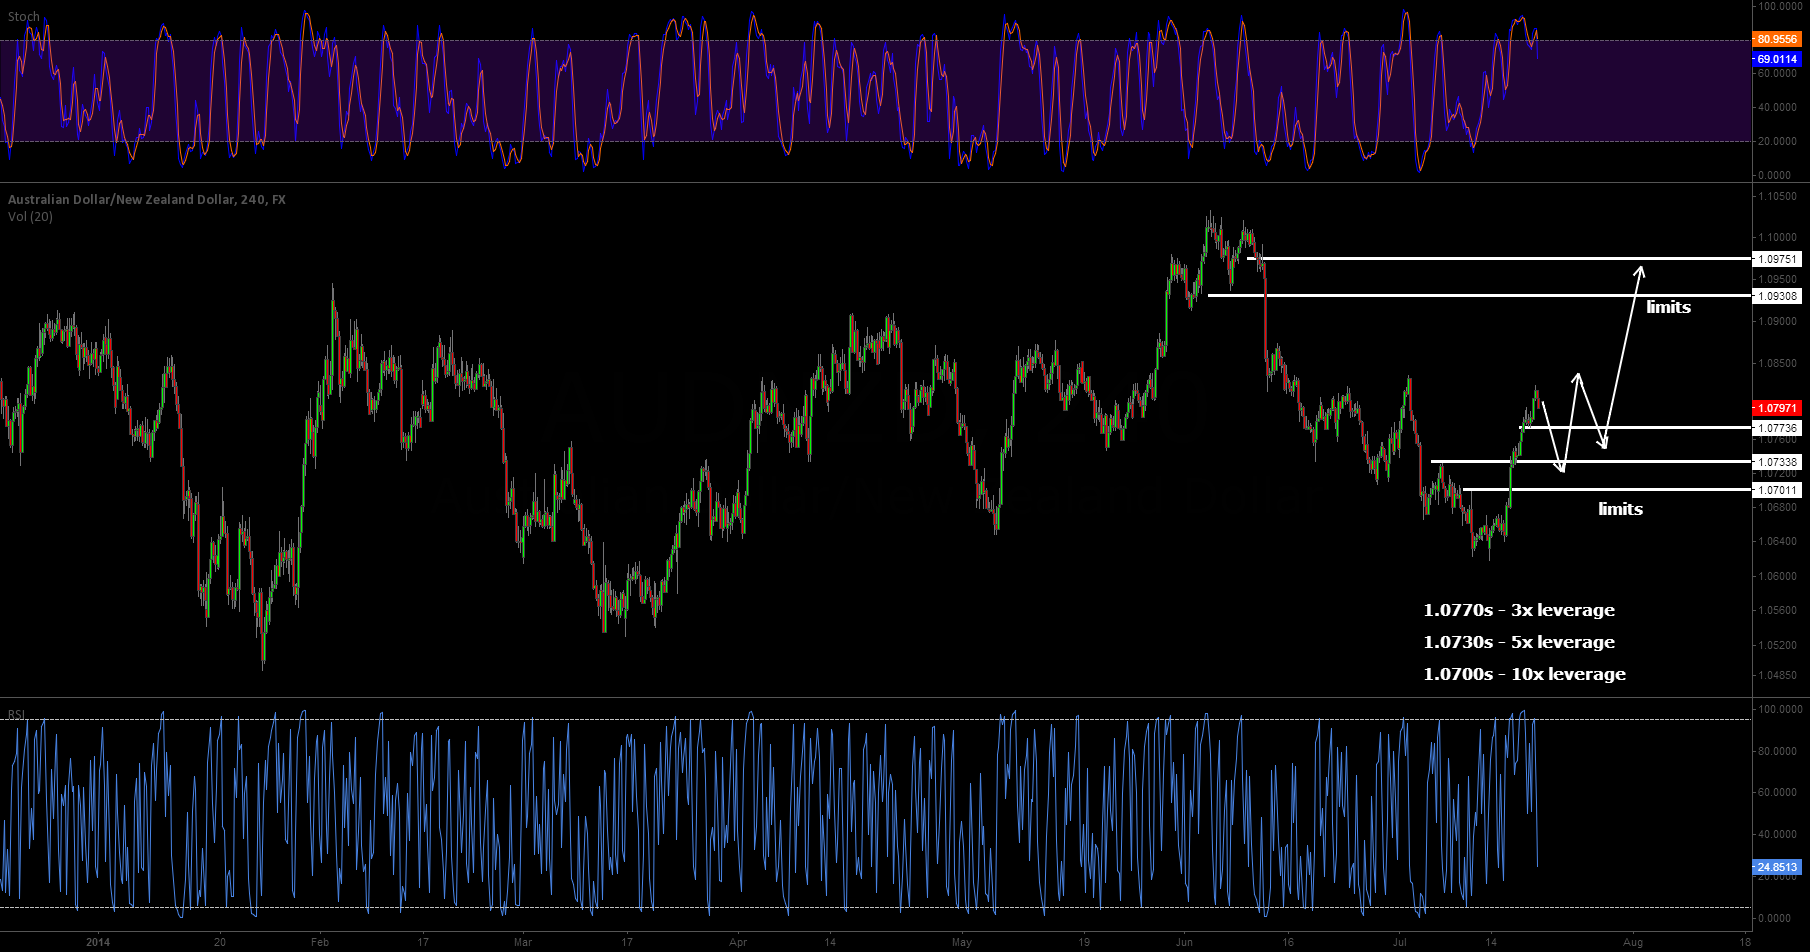 Not exactly sure how it will play out... tgt 1.0930s and 1.0970s